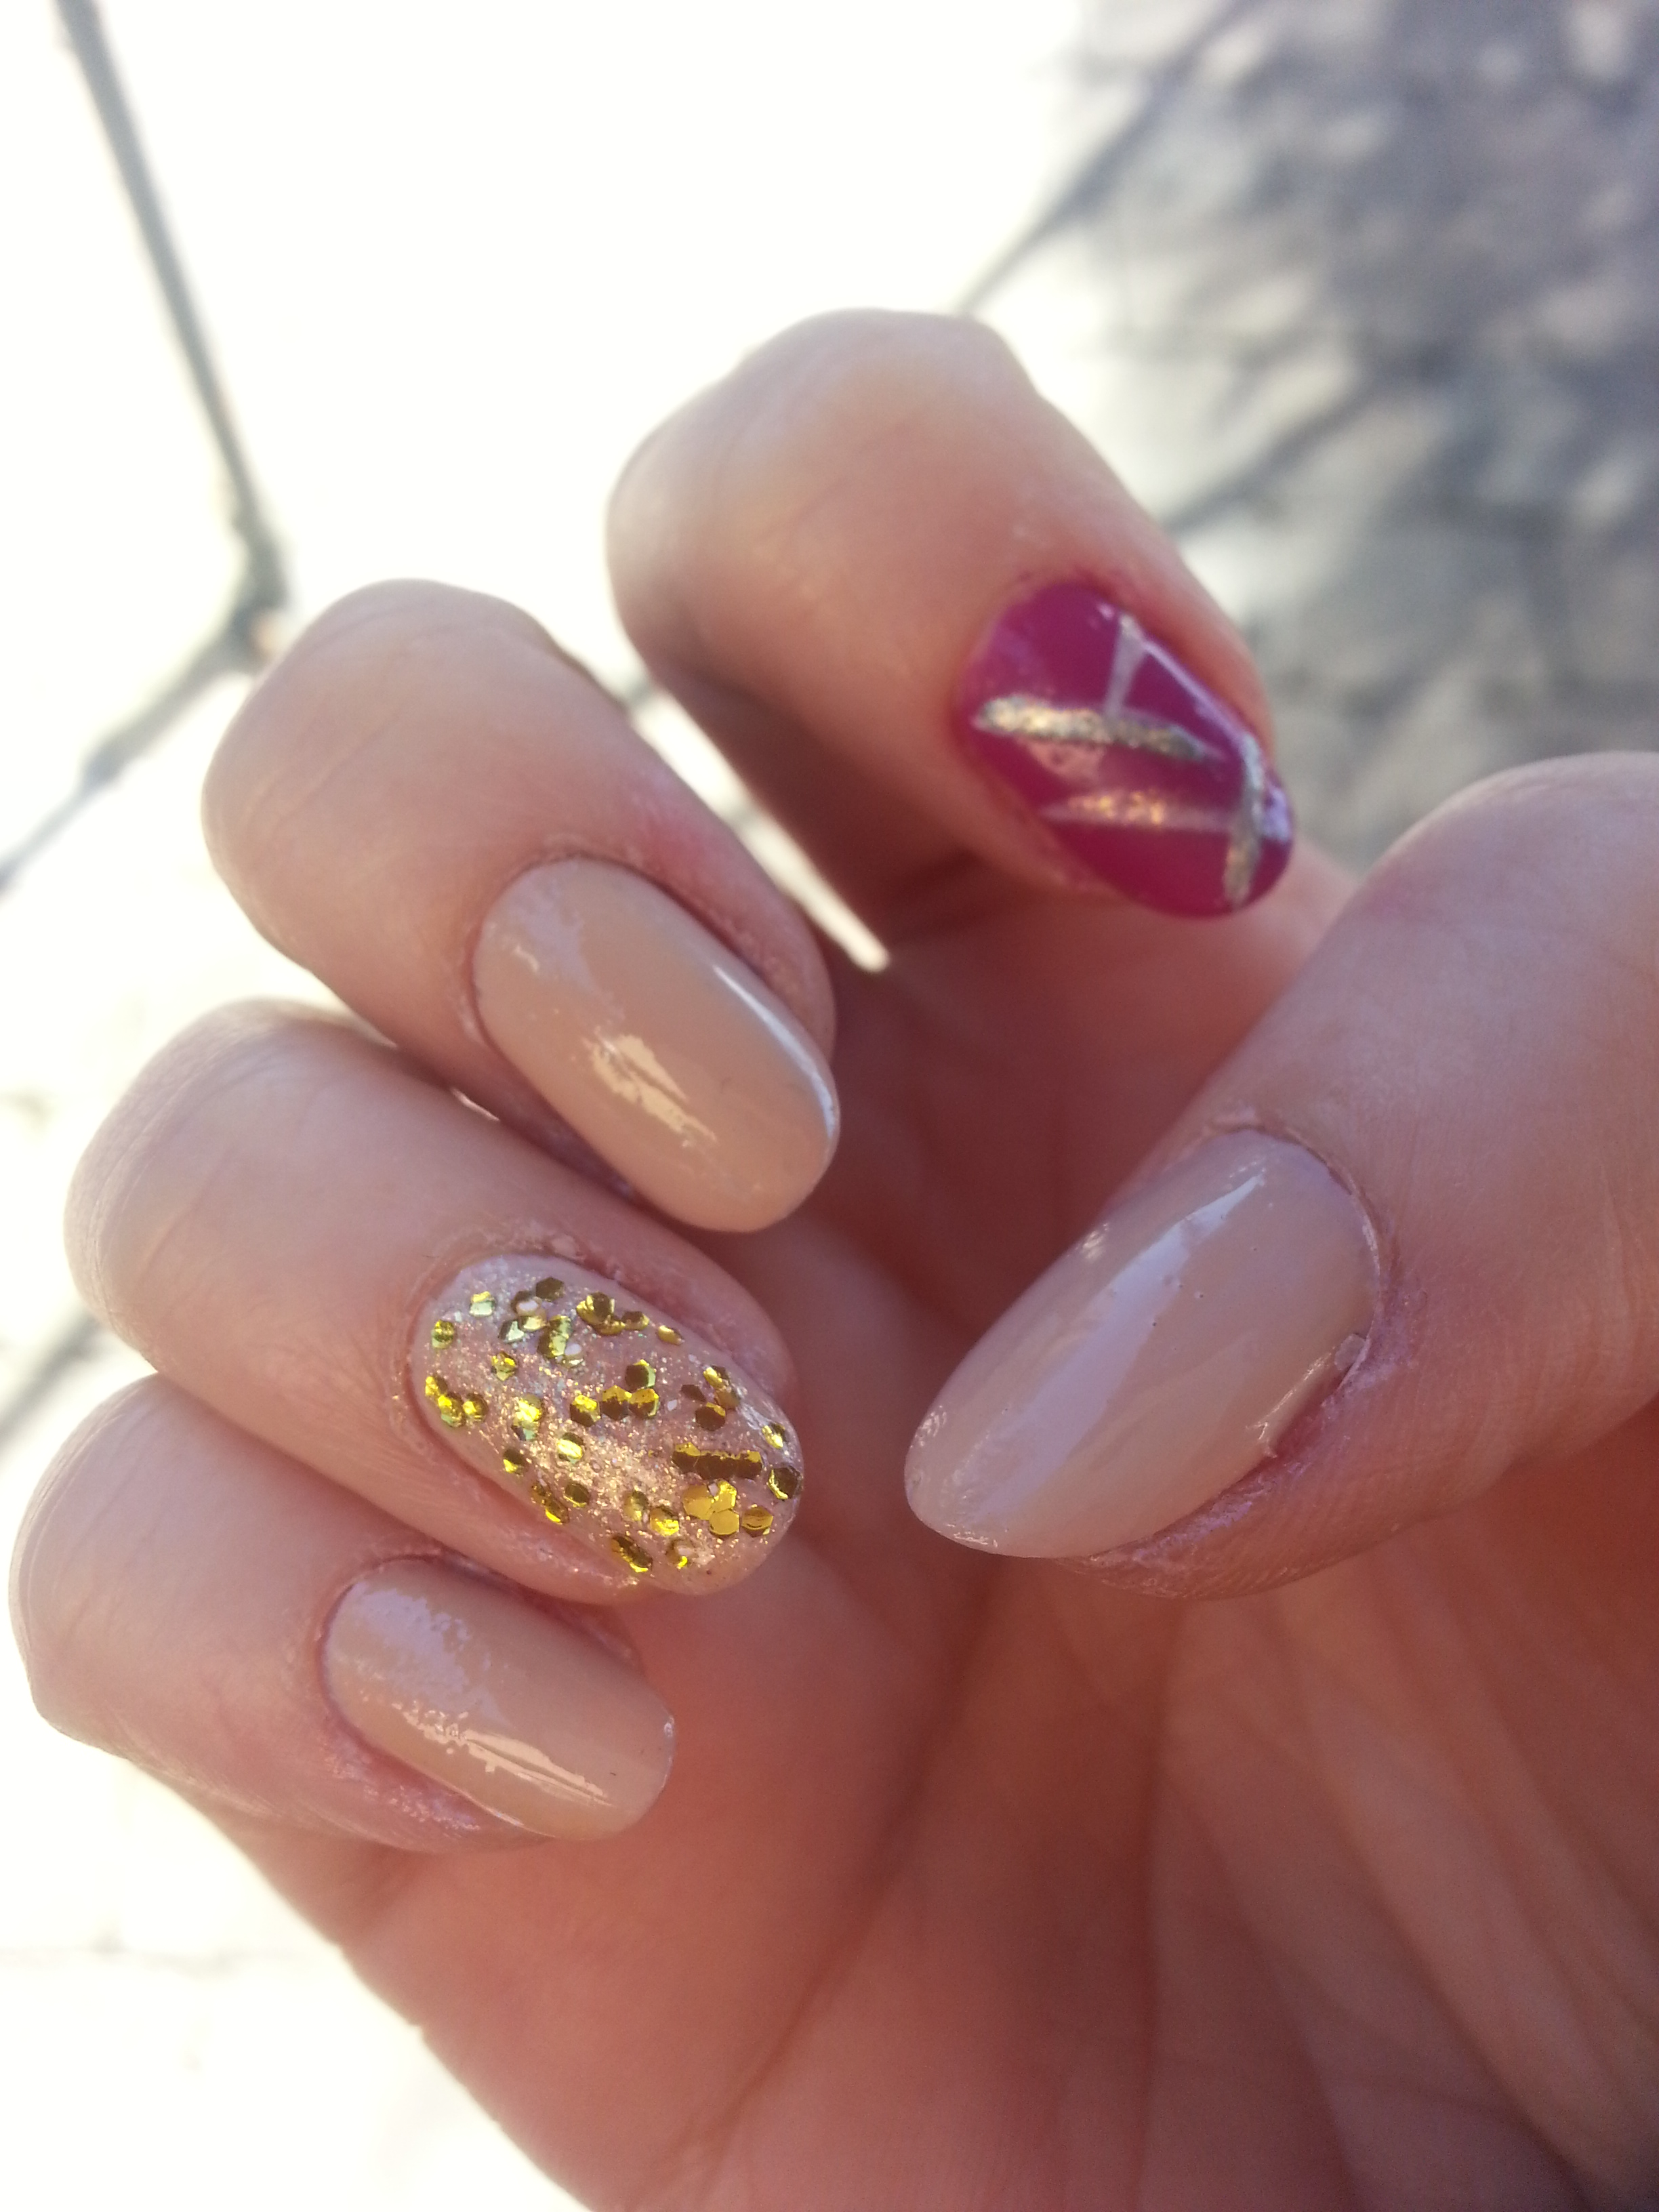 New Nail Polish Trends: My Festive New Years Nails